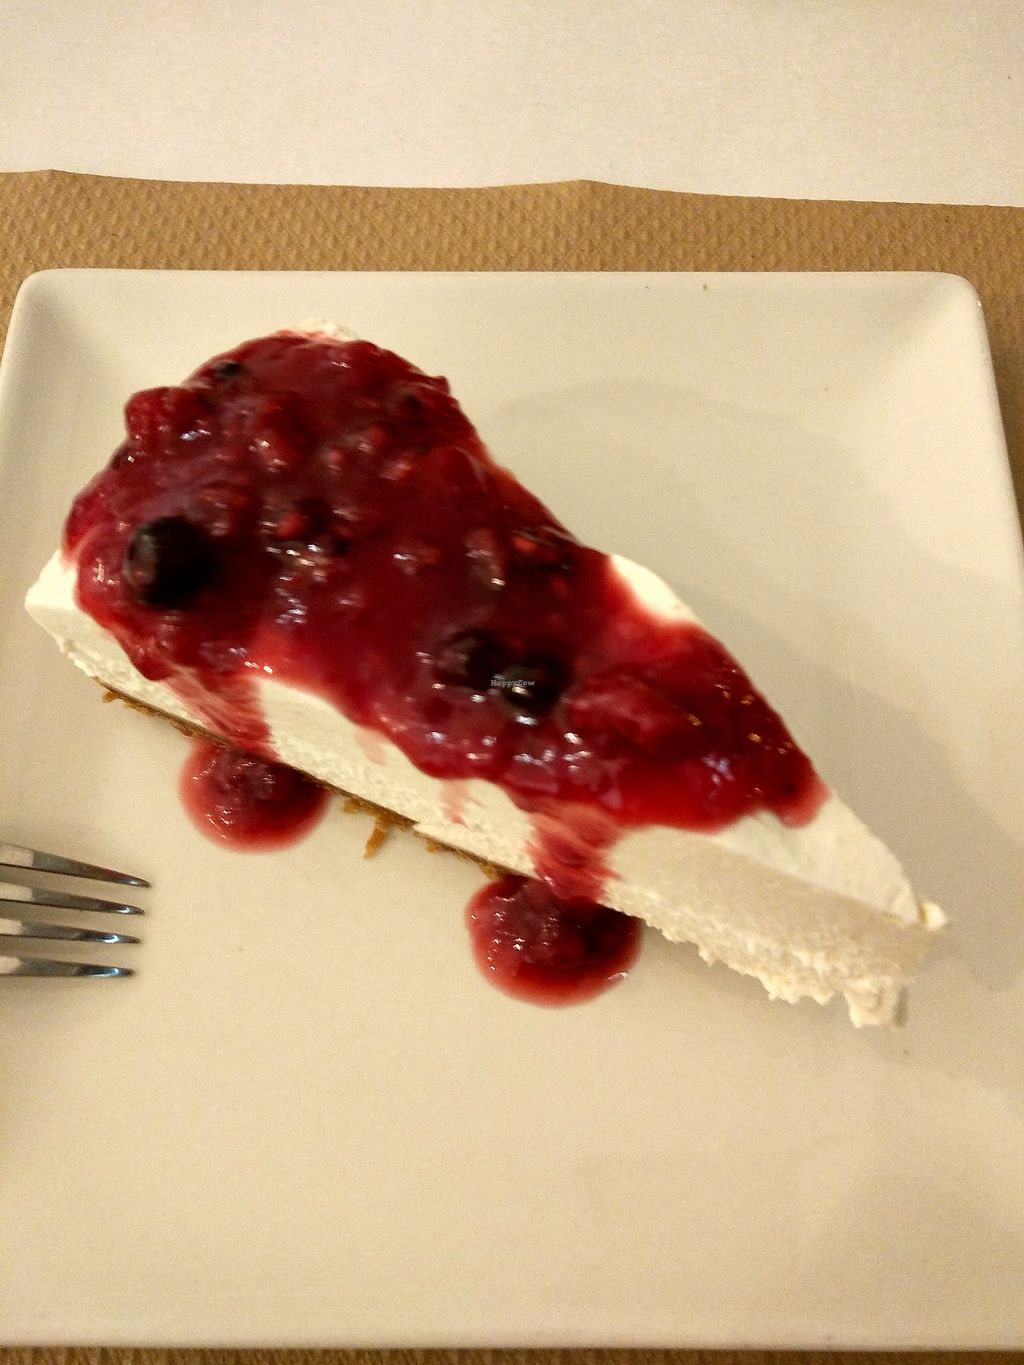 """Photo of Nomit  by <a href=""""/members/profile/SoniaR"""">SoniaR</a> <br/>vegan cheese cake <br/> December 26, 2017  - <a href='/contact/abuse/image/74396/339104'>Report</a>"""